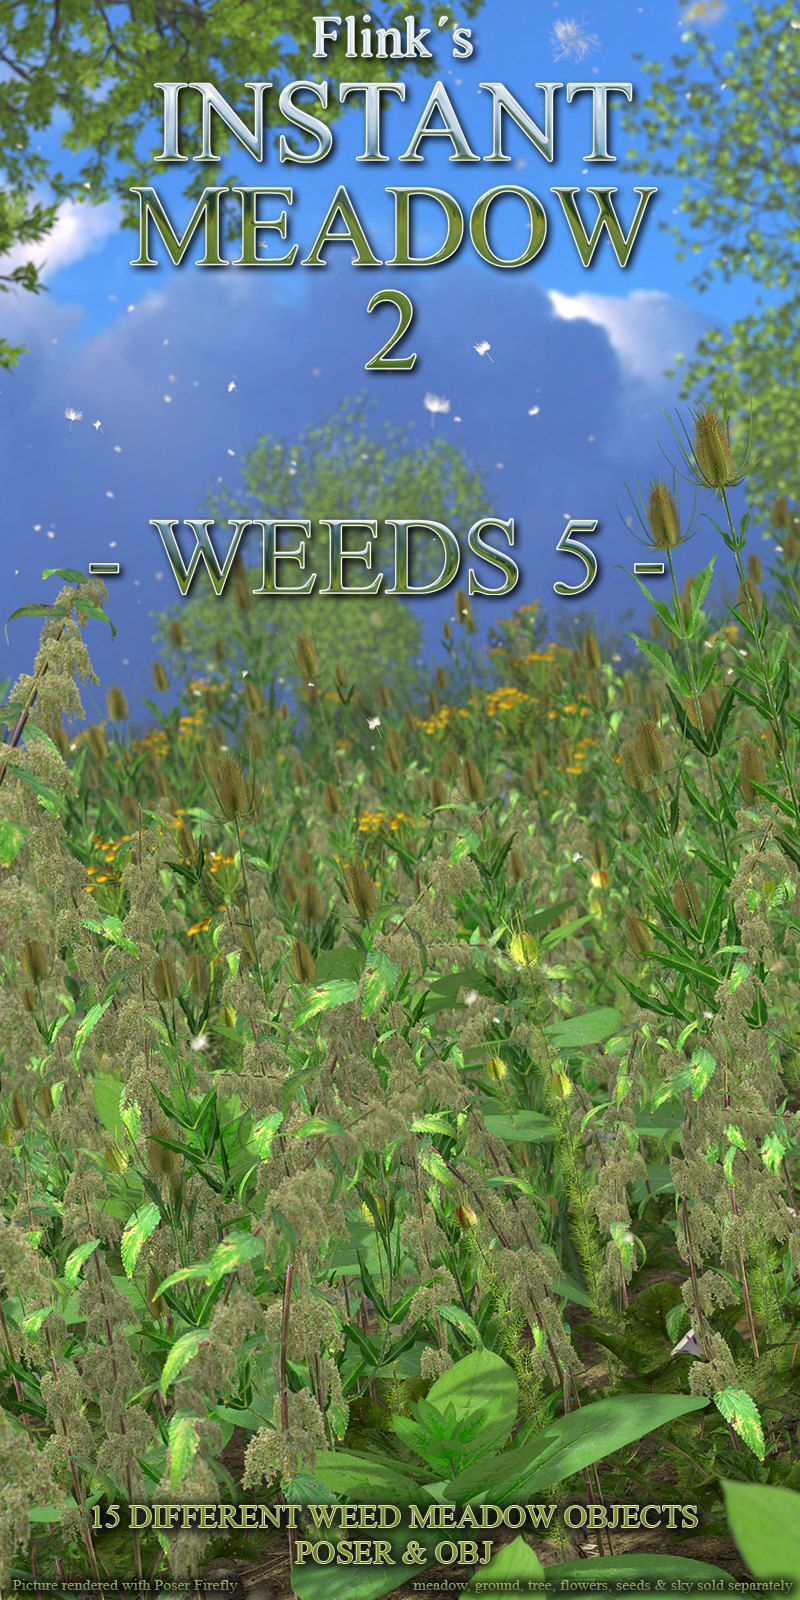 Flinks Instant Meadow 2 - Weeds 5